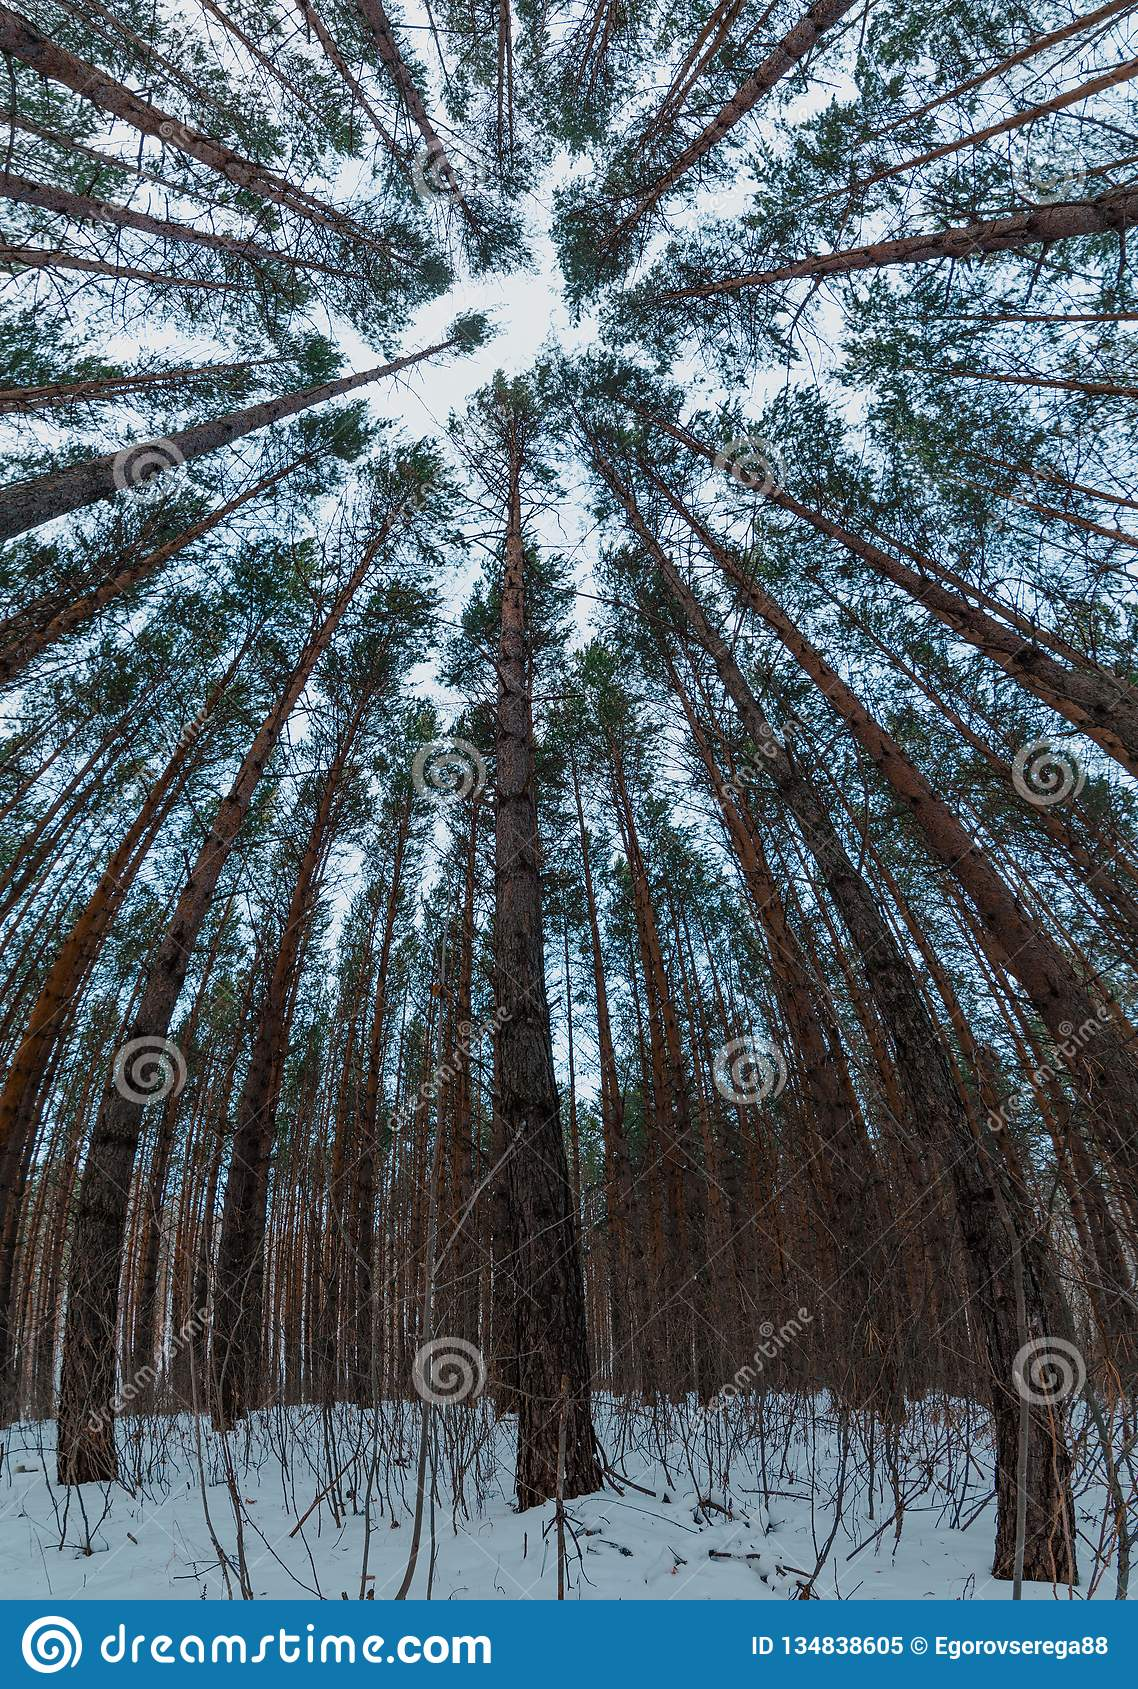 View of winter pine forest tree tops to canopy with snow in the foreground. Bottom View Wide Angle Background